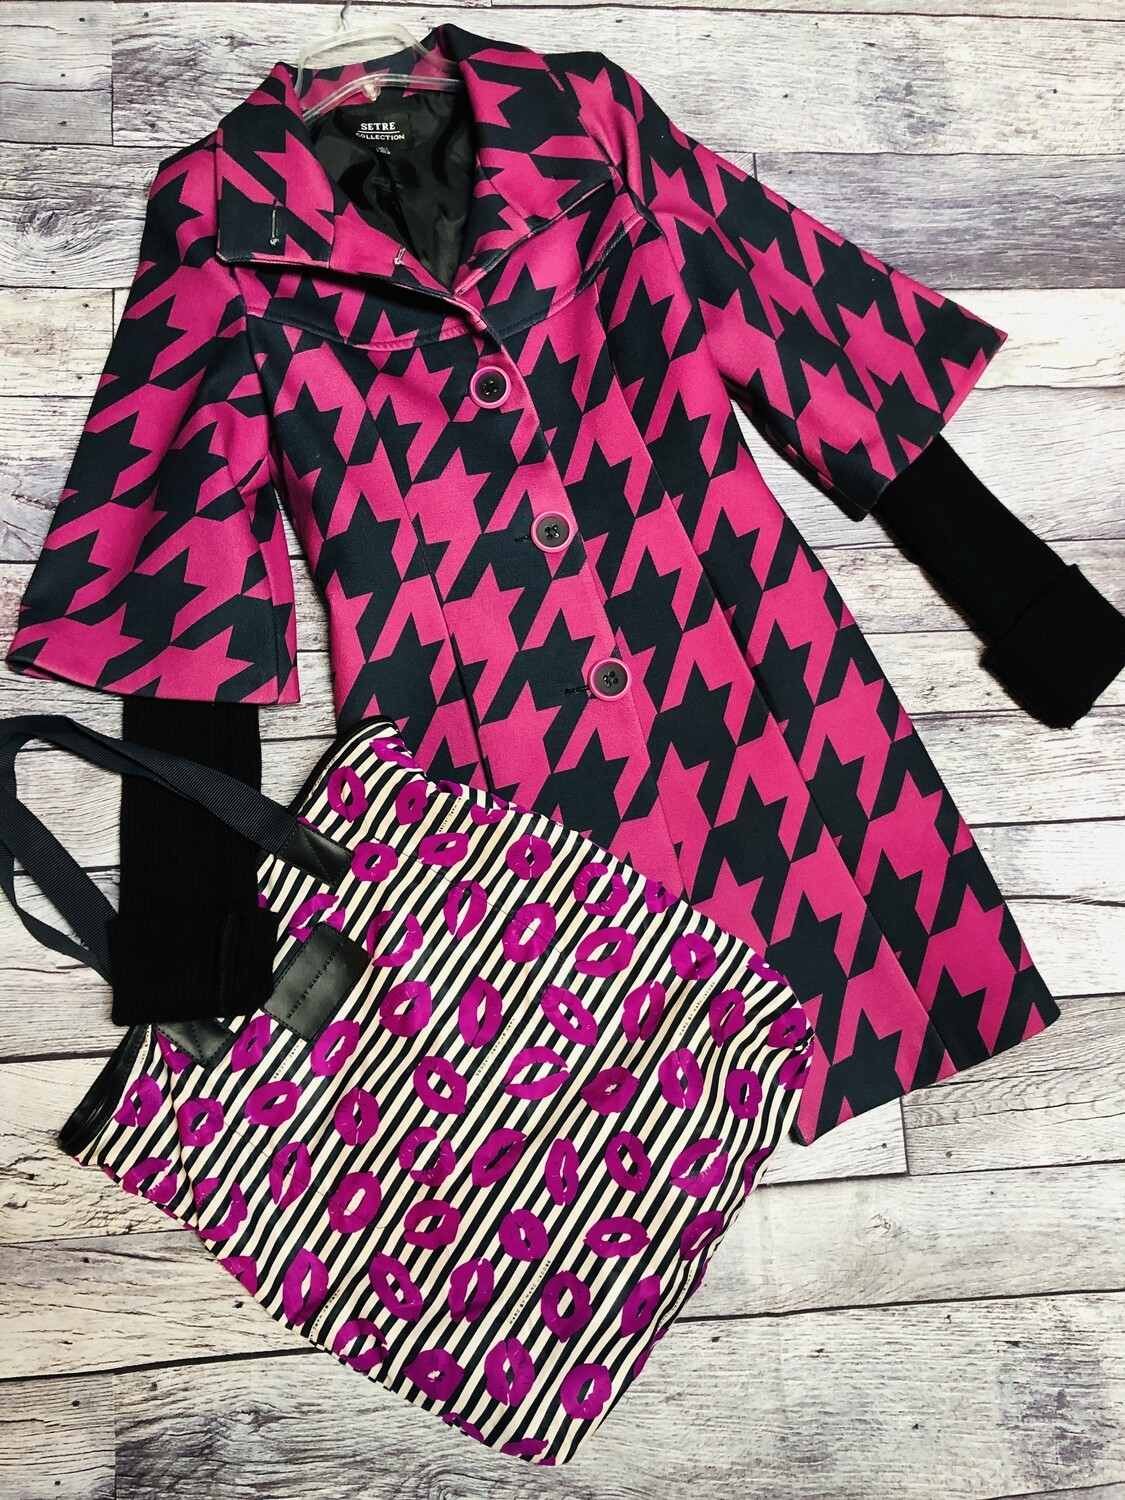 SETRE Collection Houndstooth Coat with Sweater Sleeves size Small